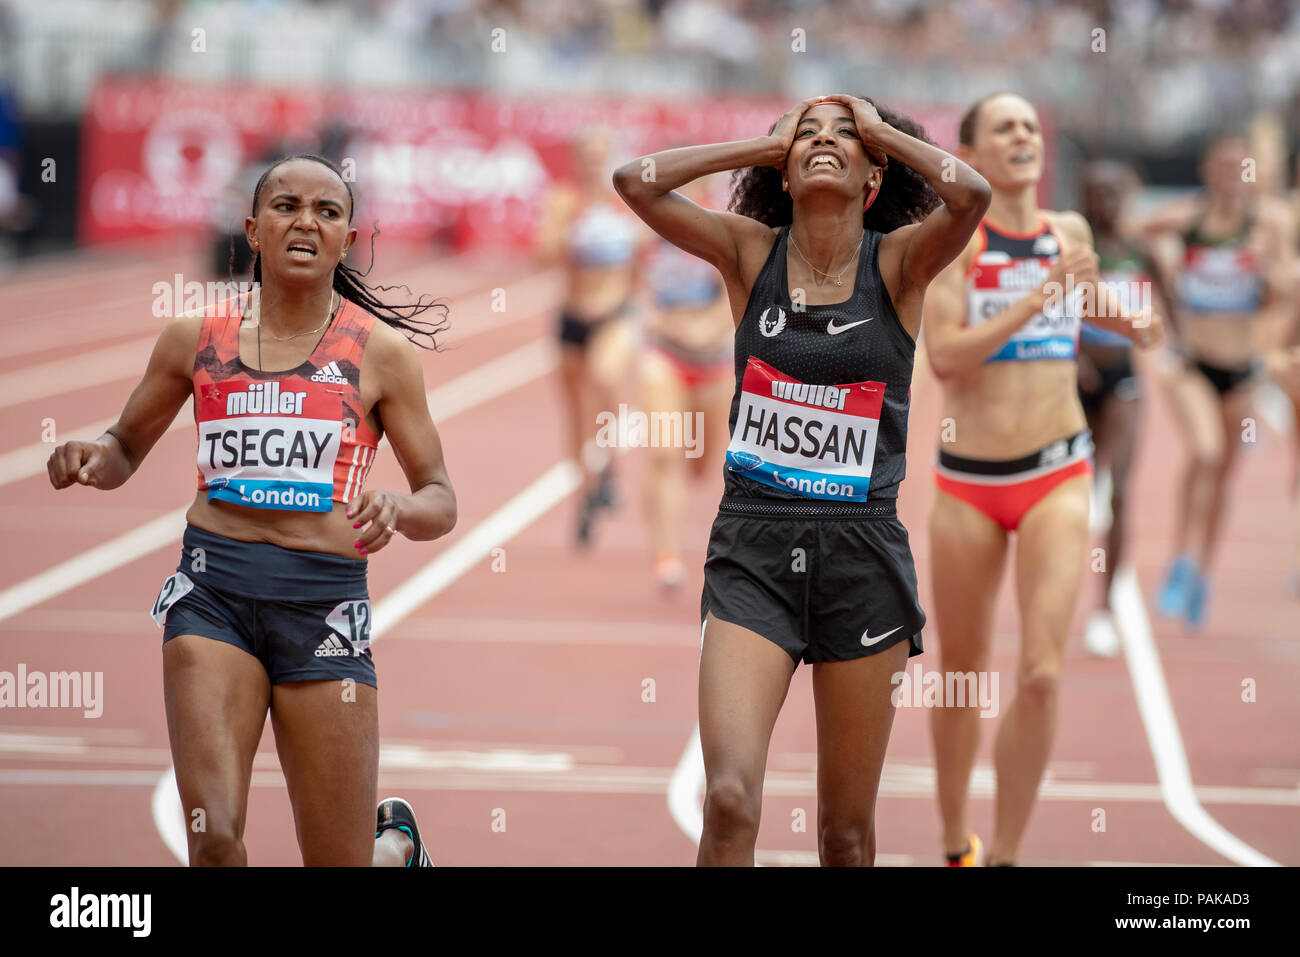 London, UK. 22nd July 2018. Sifan Hassan reacts after winning the Millicent Fawcett Mile at the Muller Anniversary Games at the London Stadium, London, Great Britiain, on 22 July 2018. Credit: Andrew Peat/Alamy Live News - Stock Image